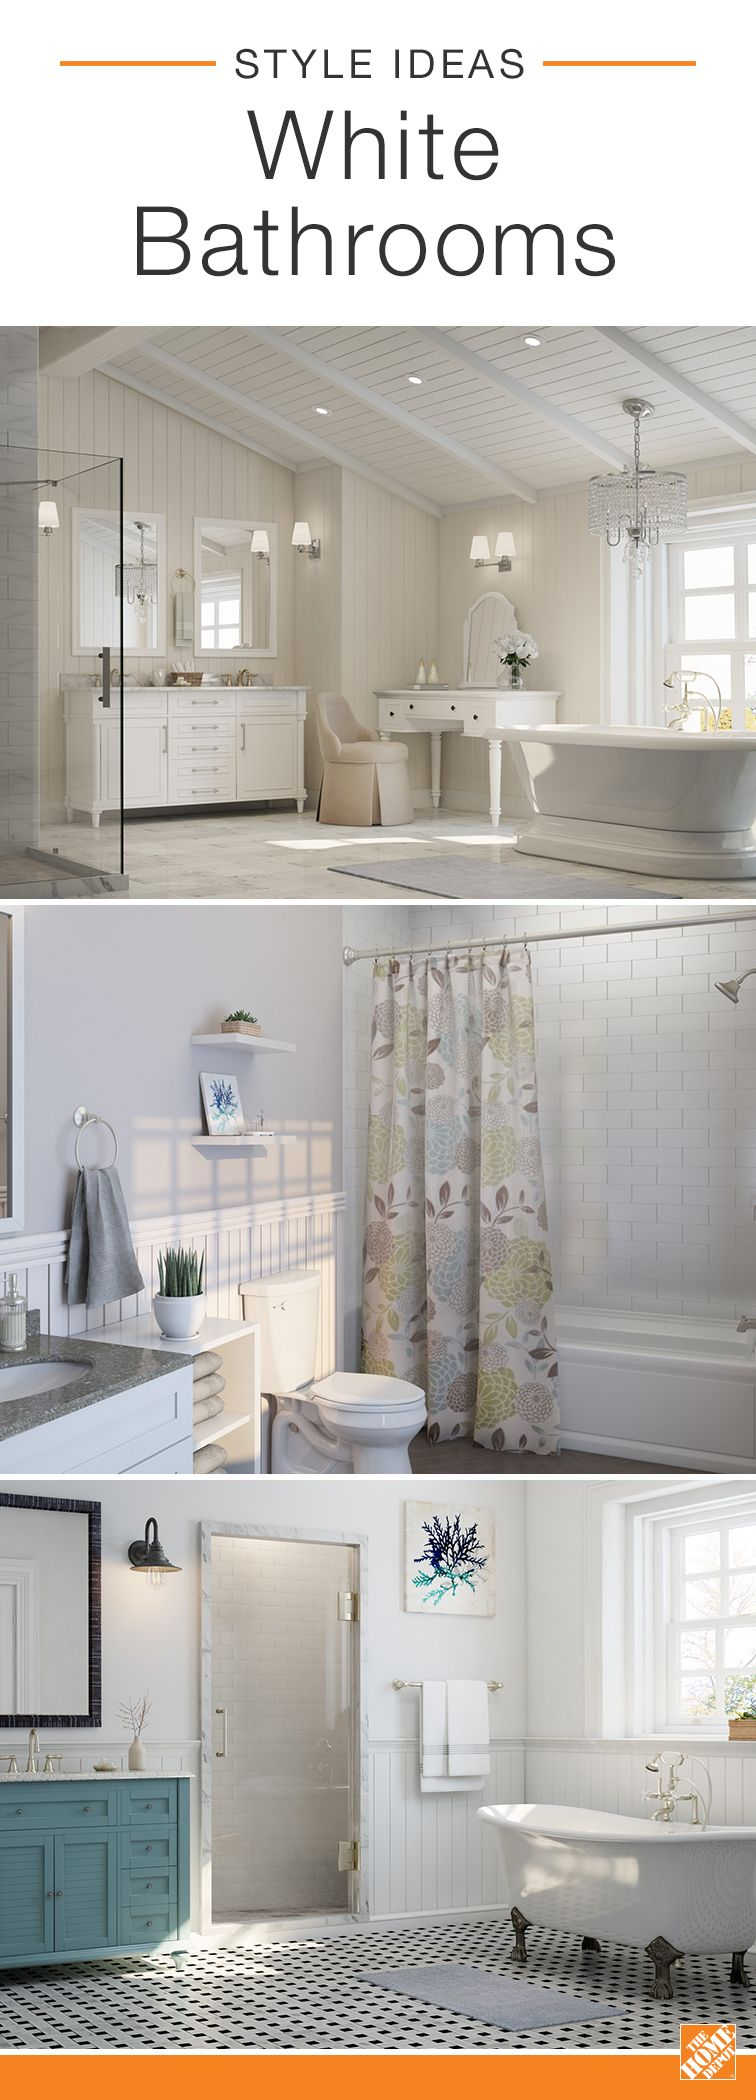 Find Inspiration for Your New Bathroom